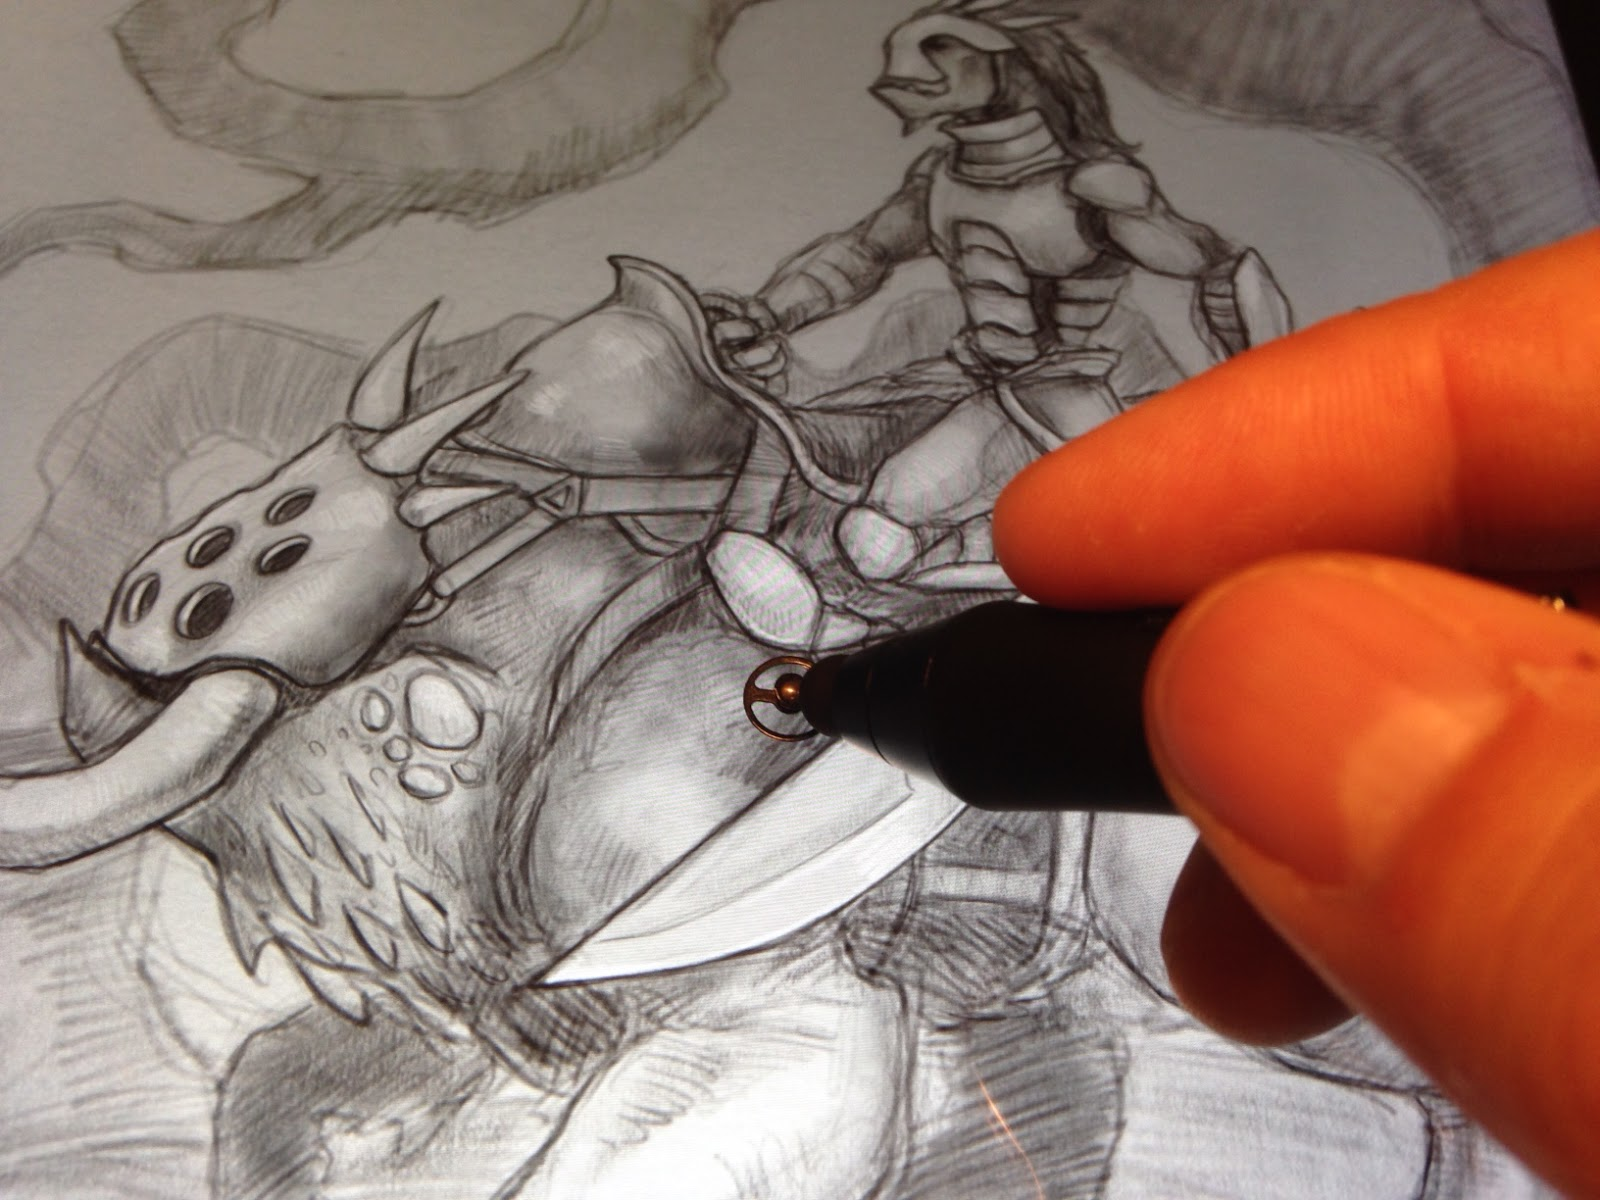 New Art Tool Review from Crabfu